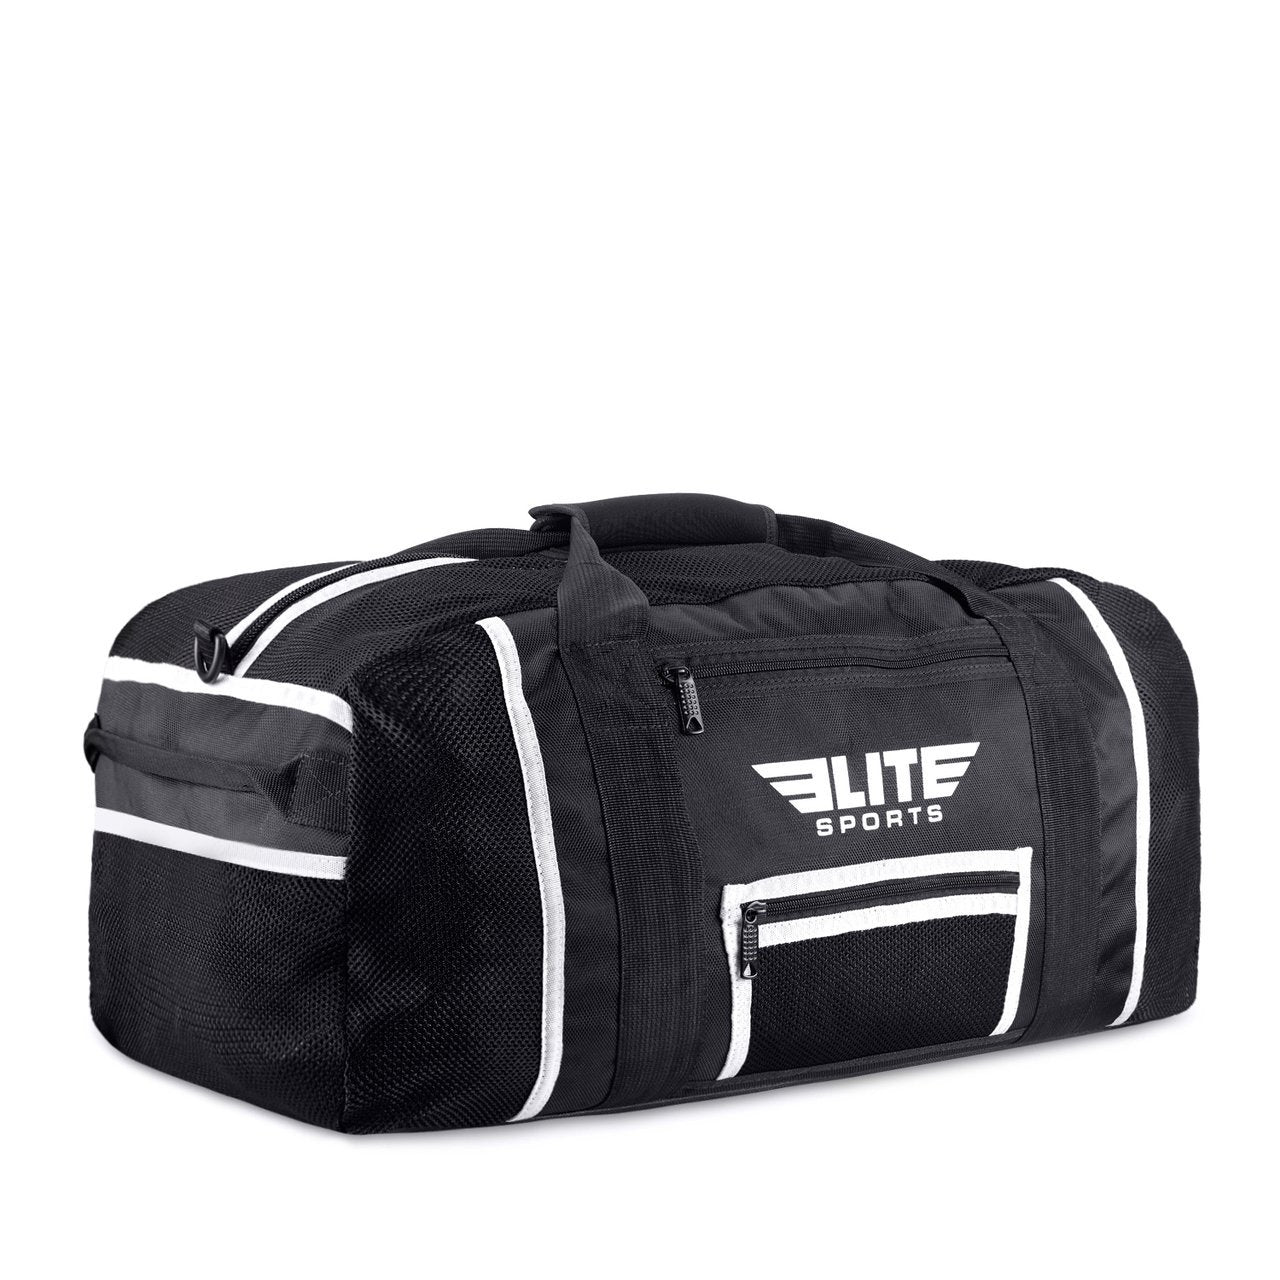 Load image into Gallery viewer, Elite Sports Warrior Series Black/White Strip Large Duffel Boxing Gear Gym Bag